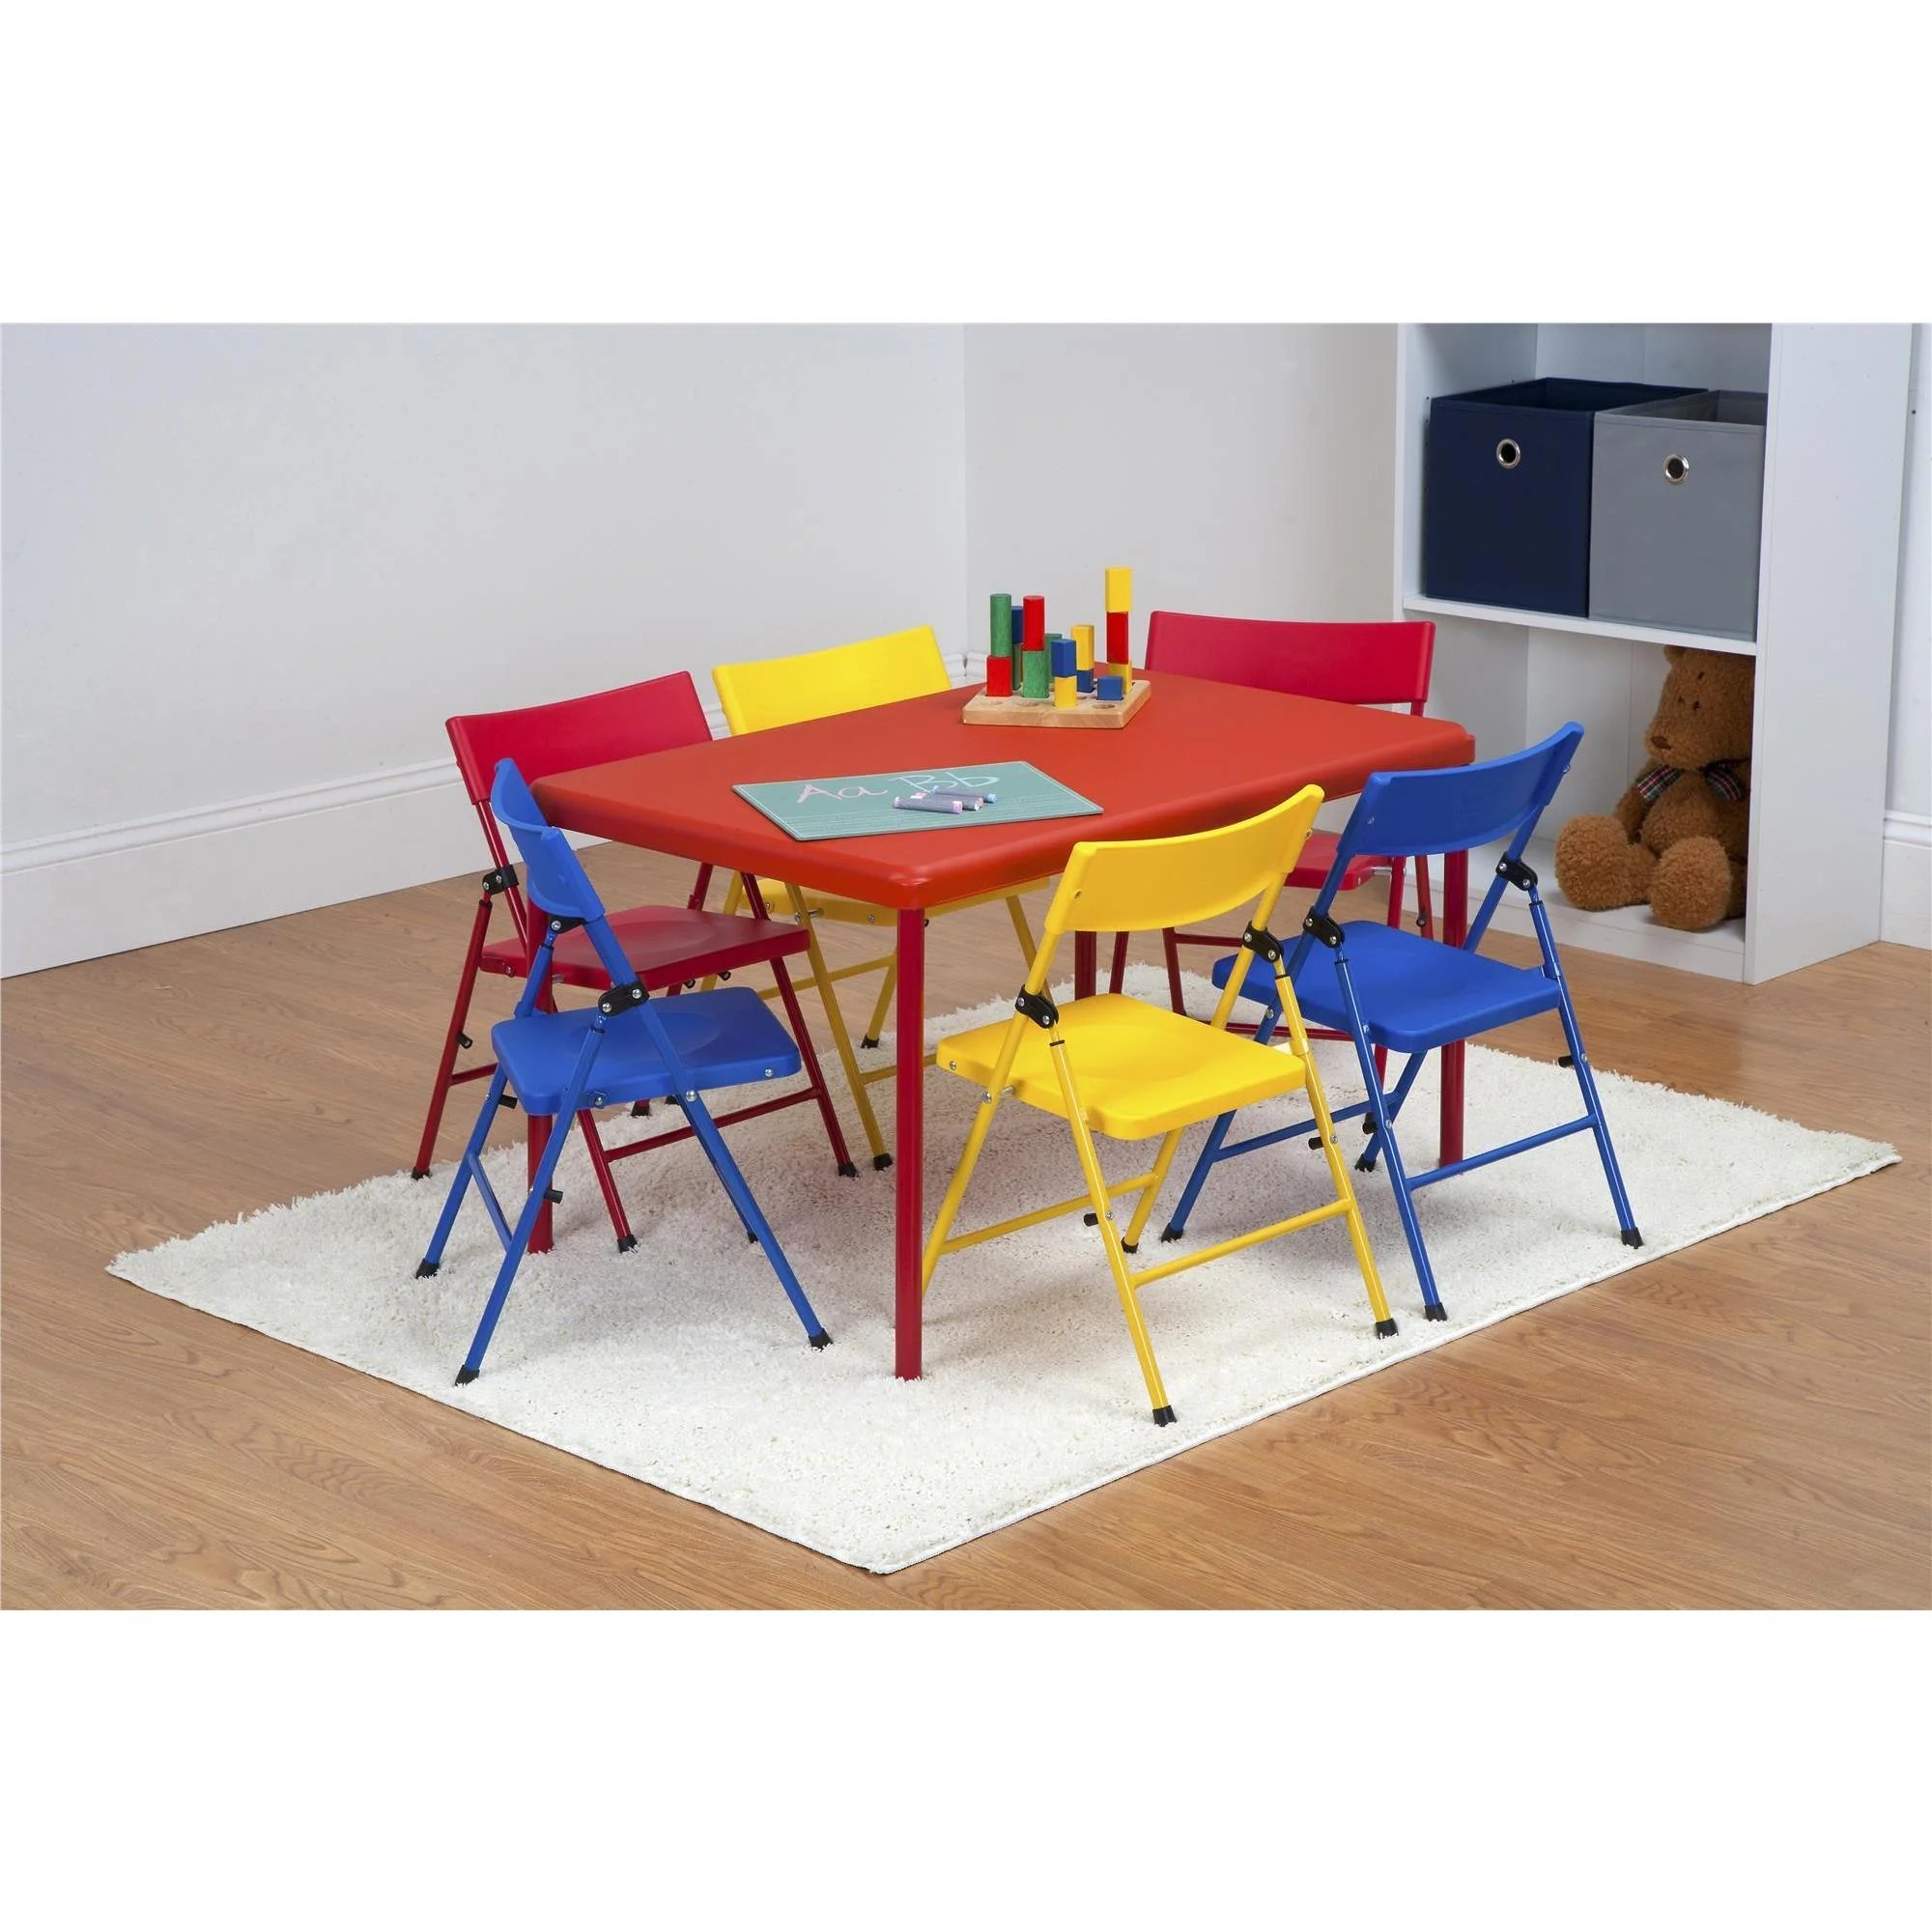 Childrens Folding Table And Chairs Safety First 7 Piece Children S Juvenile Set With Pinch Free Folding Chairs And Screw In Leg Table